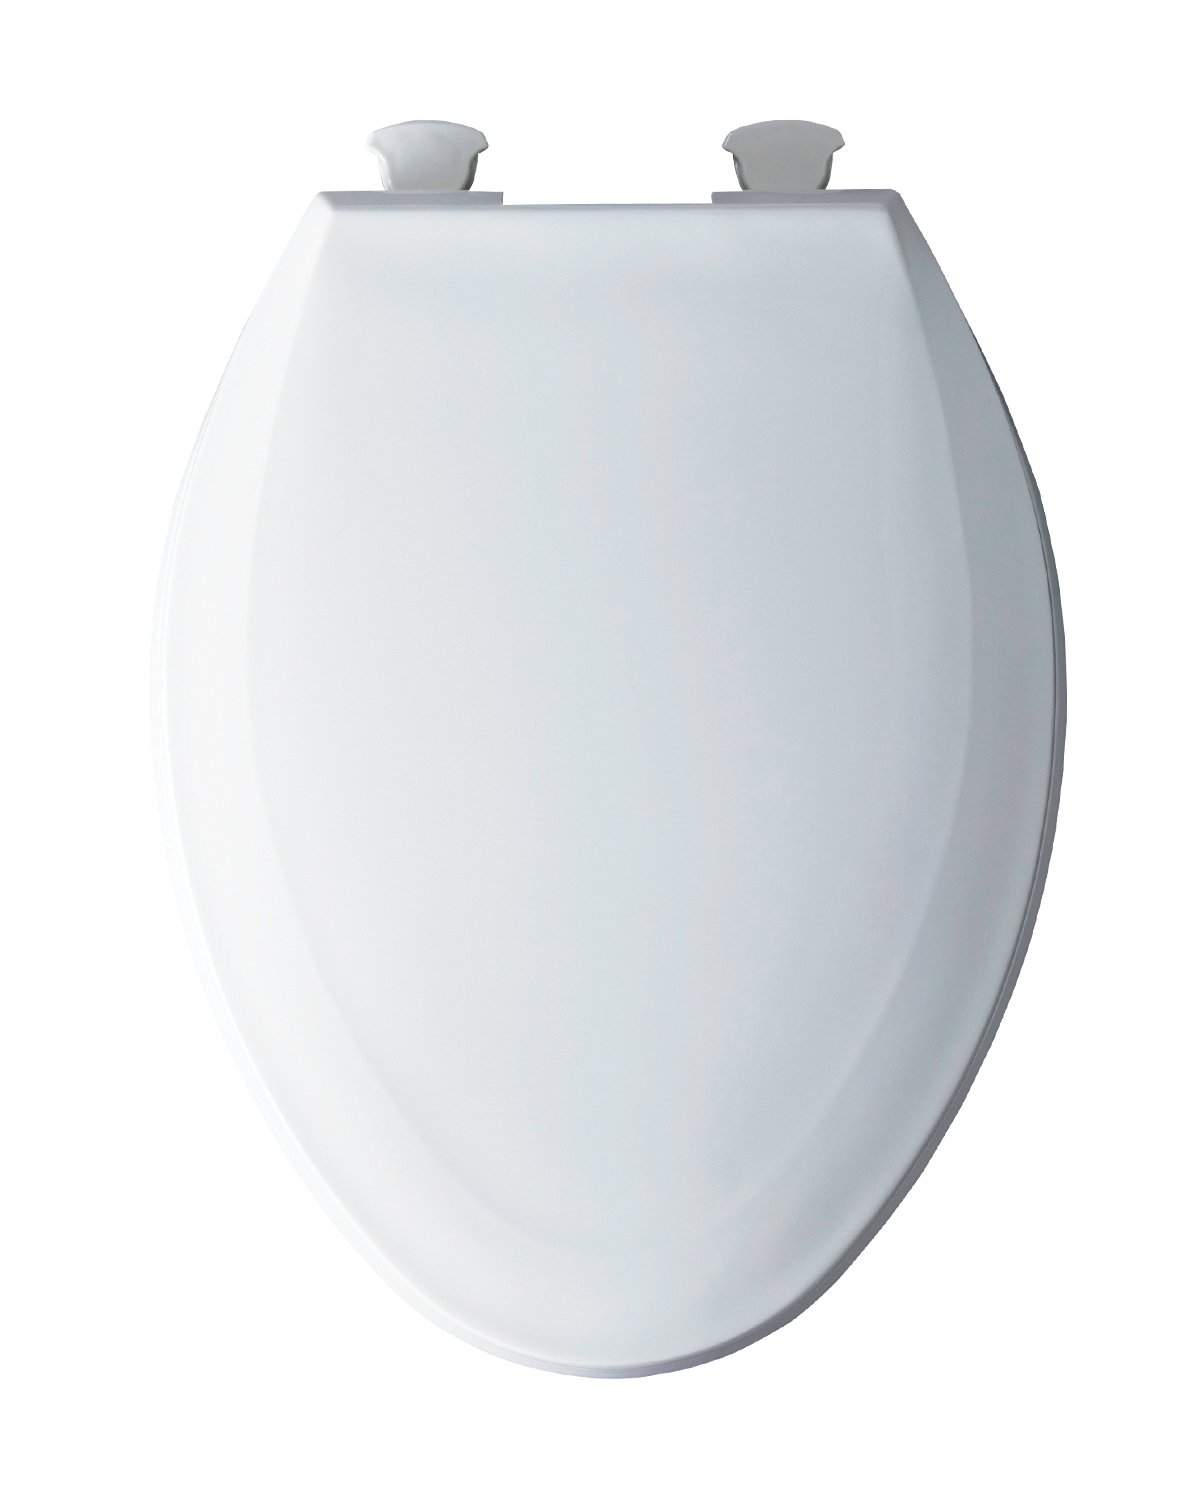 Bemis 1100EC 000 Plastic Elongated Toilet Seat with Easy Clean & Change Hinges, White